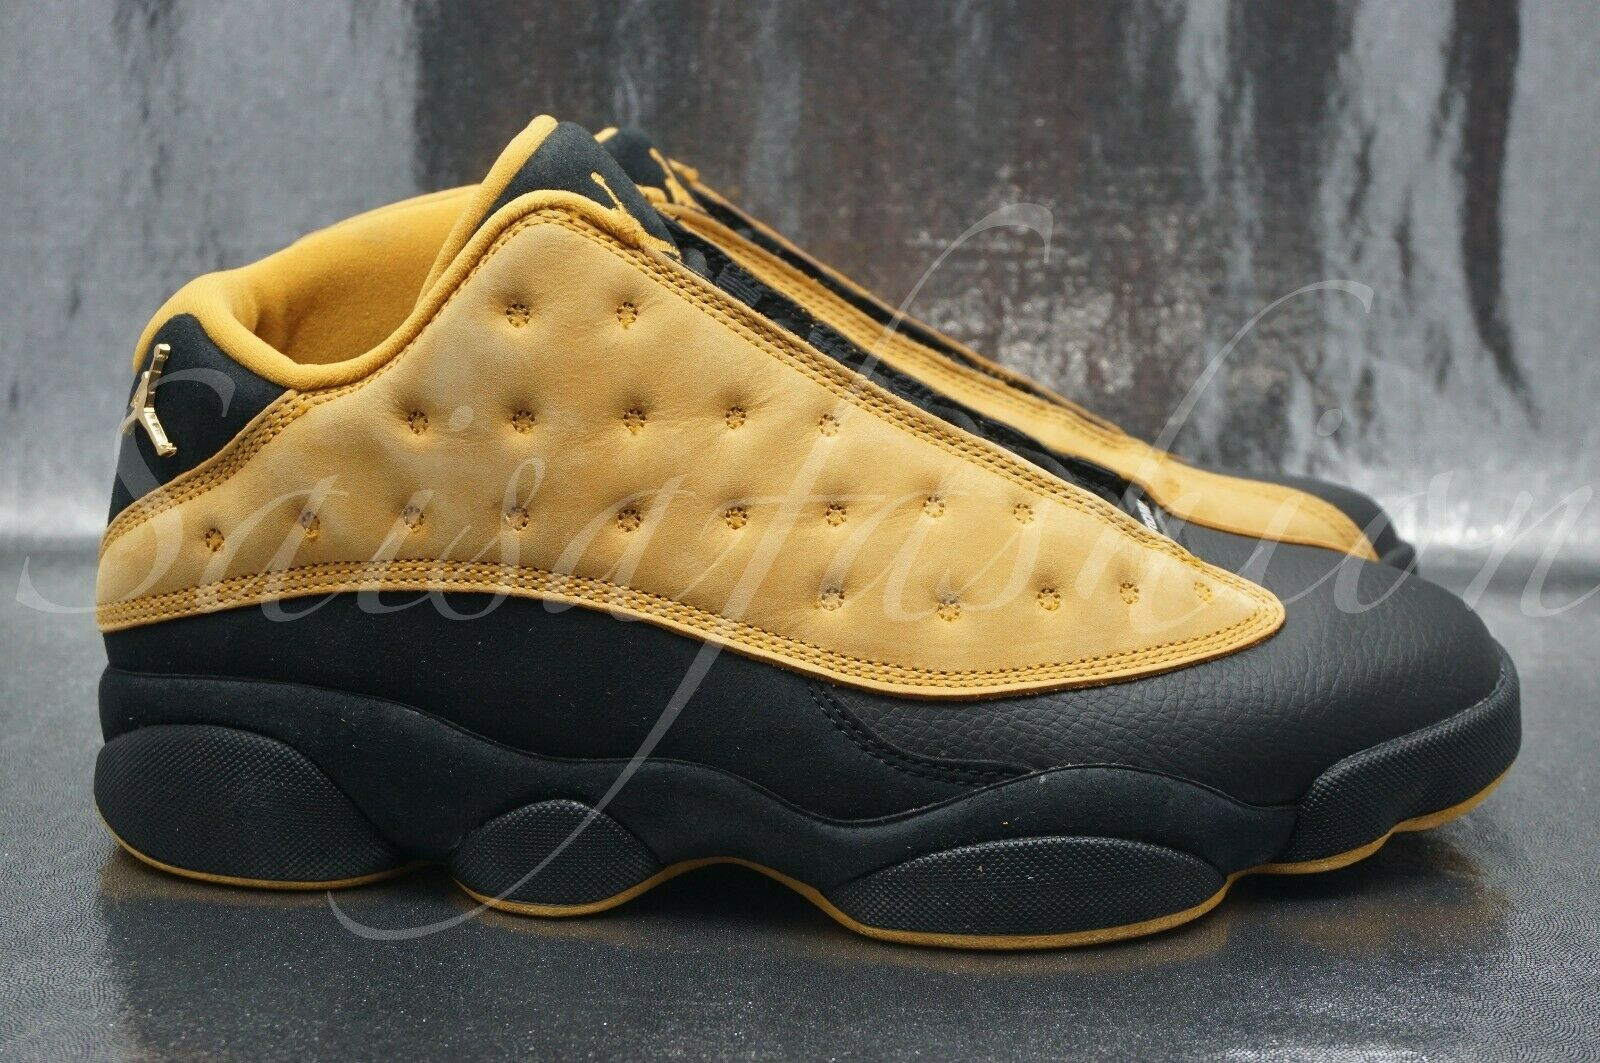 new product 1058a 6a49a Nike Air Jordan 13 Retro Low Chutney Mens Size 12 Deadstock for sale ...